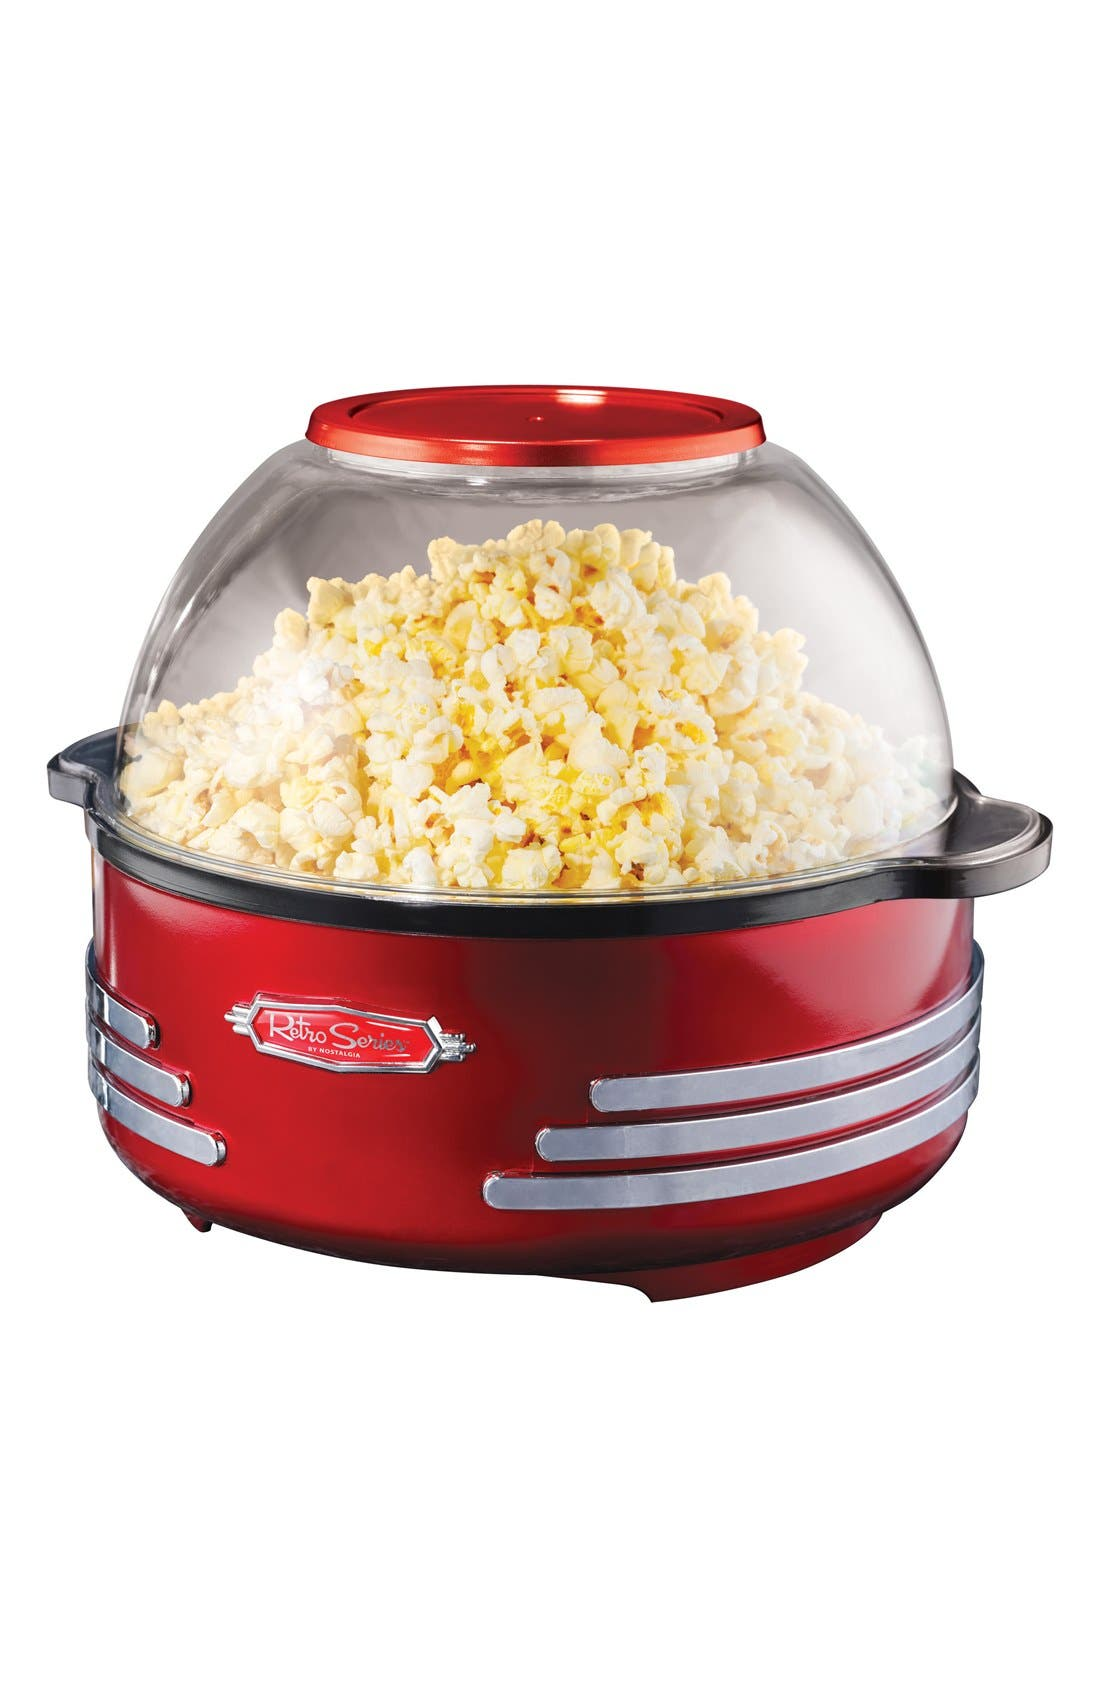 Alternate Image 1 Selected - Nostalgia Electronics Retro Stirring Popcorn Maker